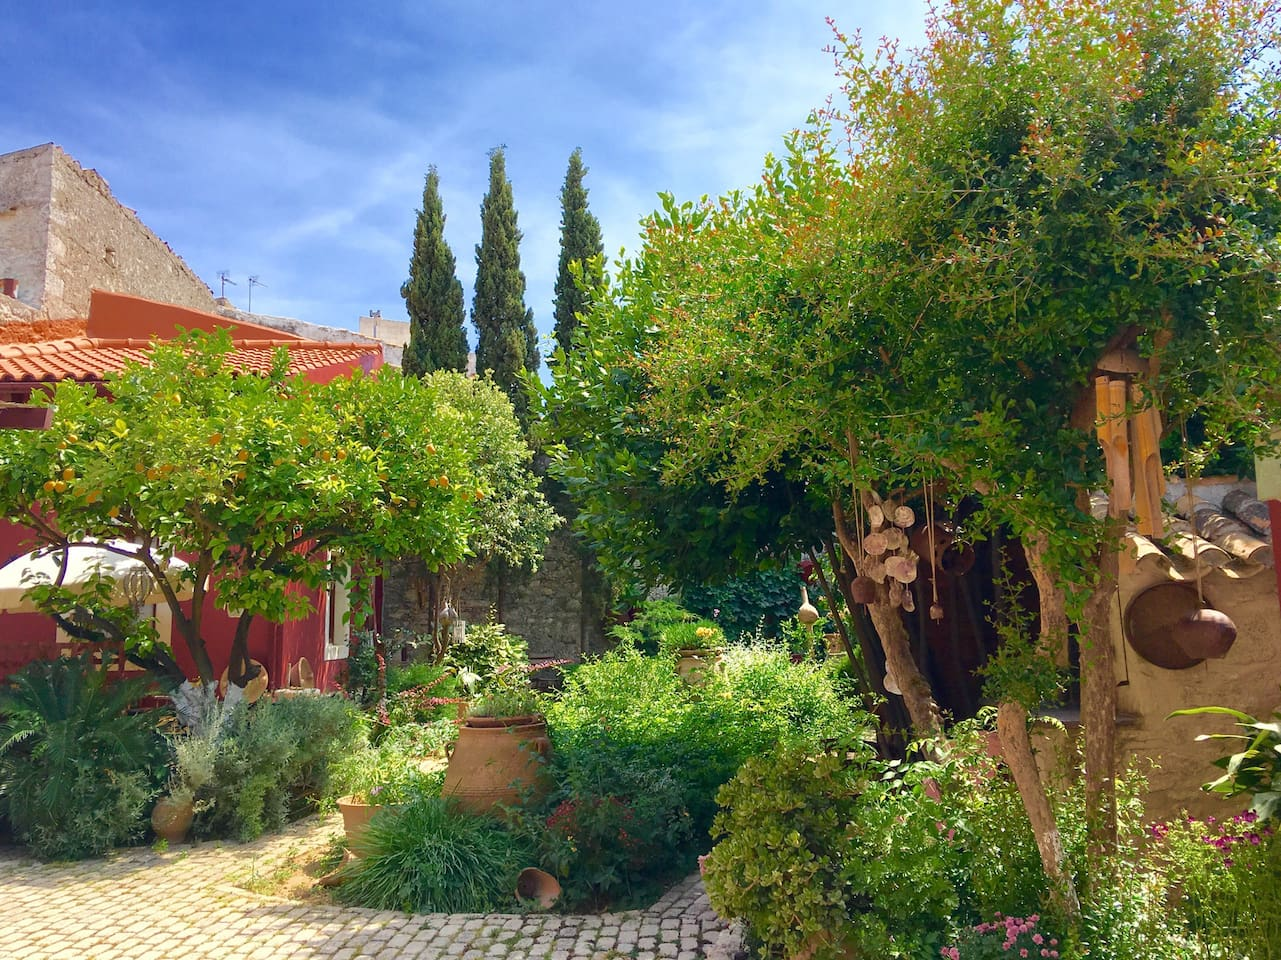 The Romantic Minoan Villa stands as a peaceful, tranquil and protected space, in the heart of a colorful aromatic garden designed by the Potter Helen Weisz.